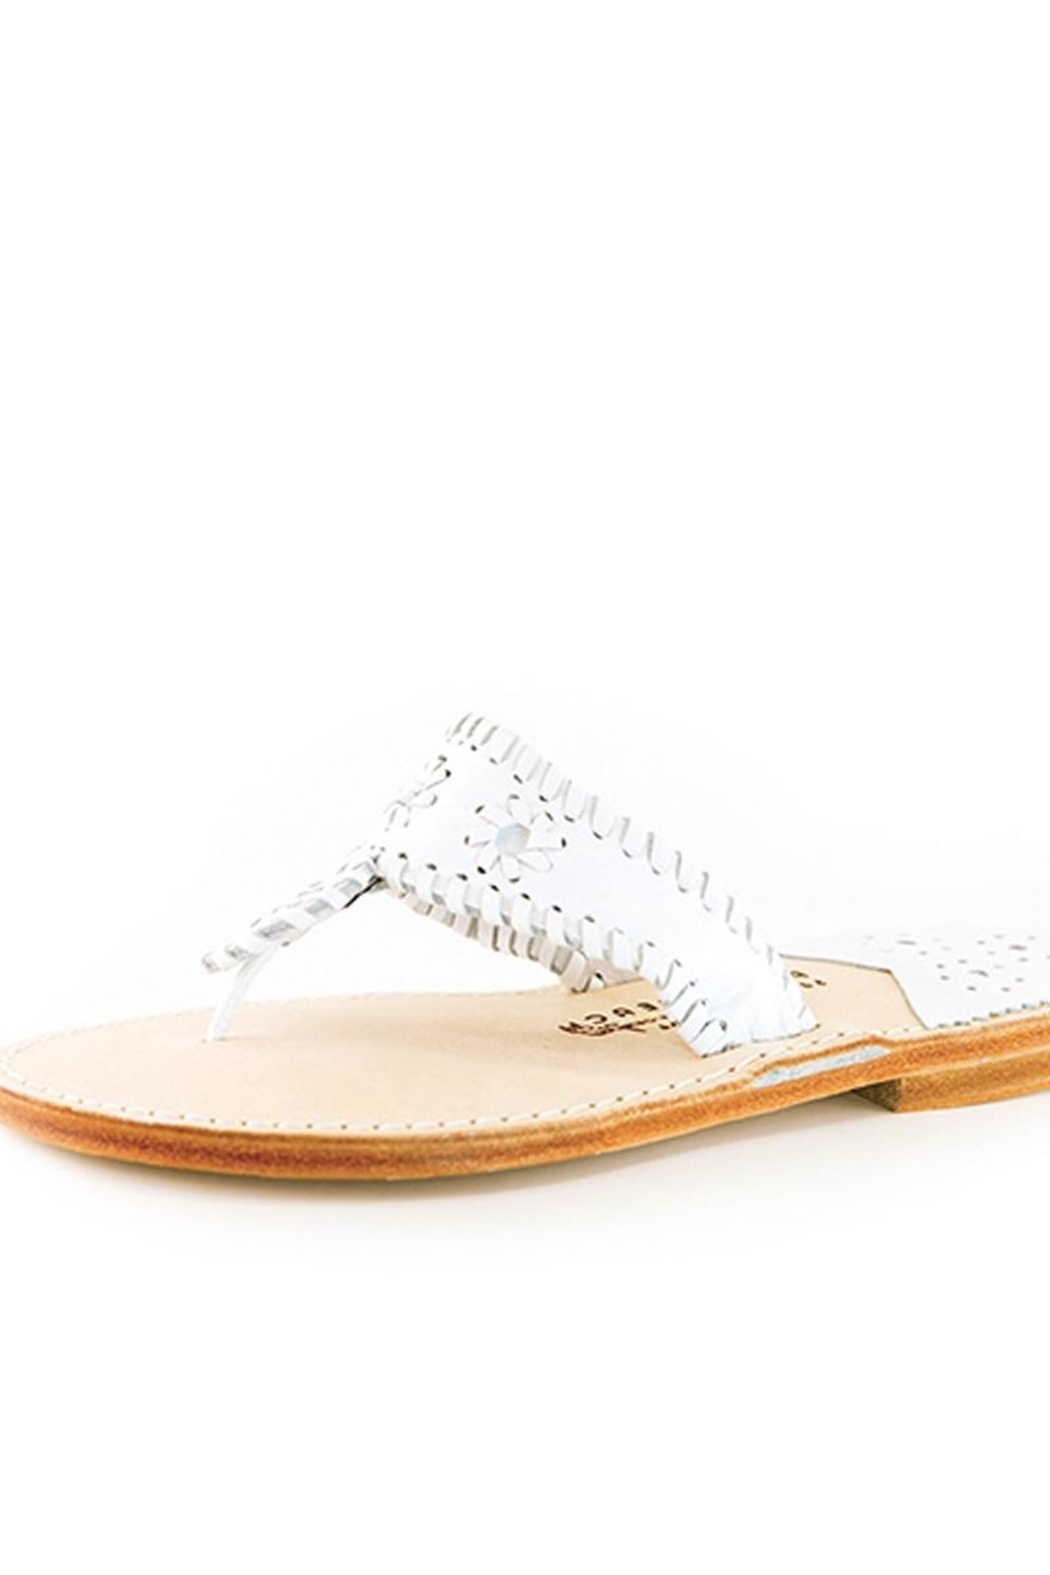 Palm Beach Collection Leather Sandals - Flipflops - Front Cropped Image